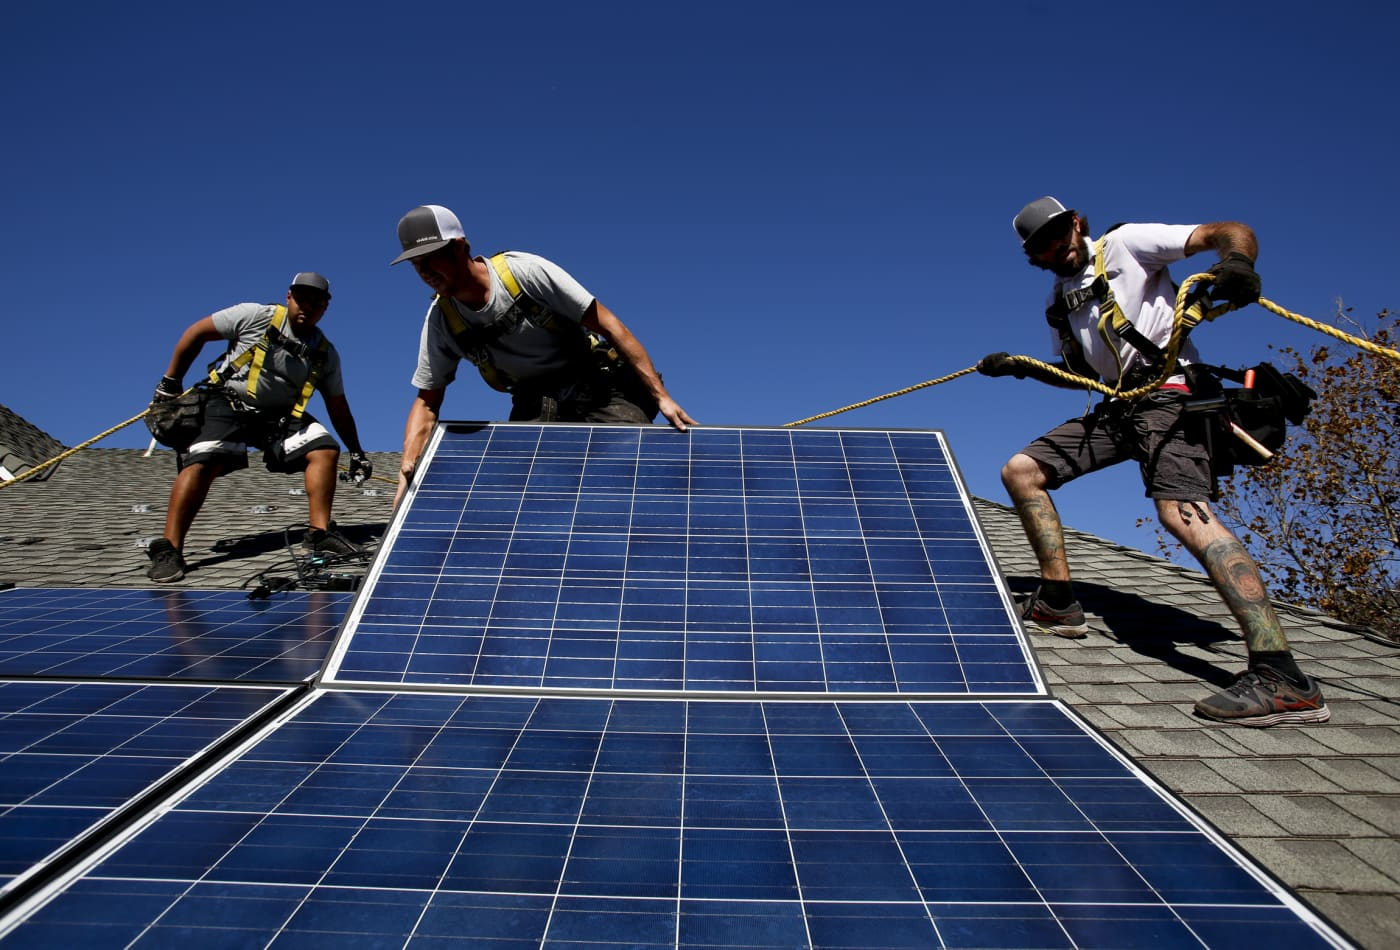 Solar ETF soars as Biden leads in polls. Other groups that could benefit from a Democratic win